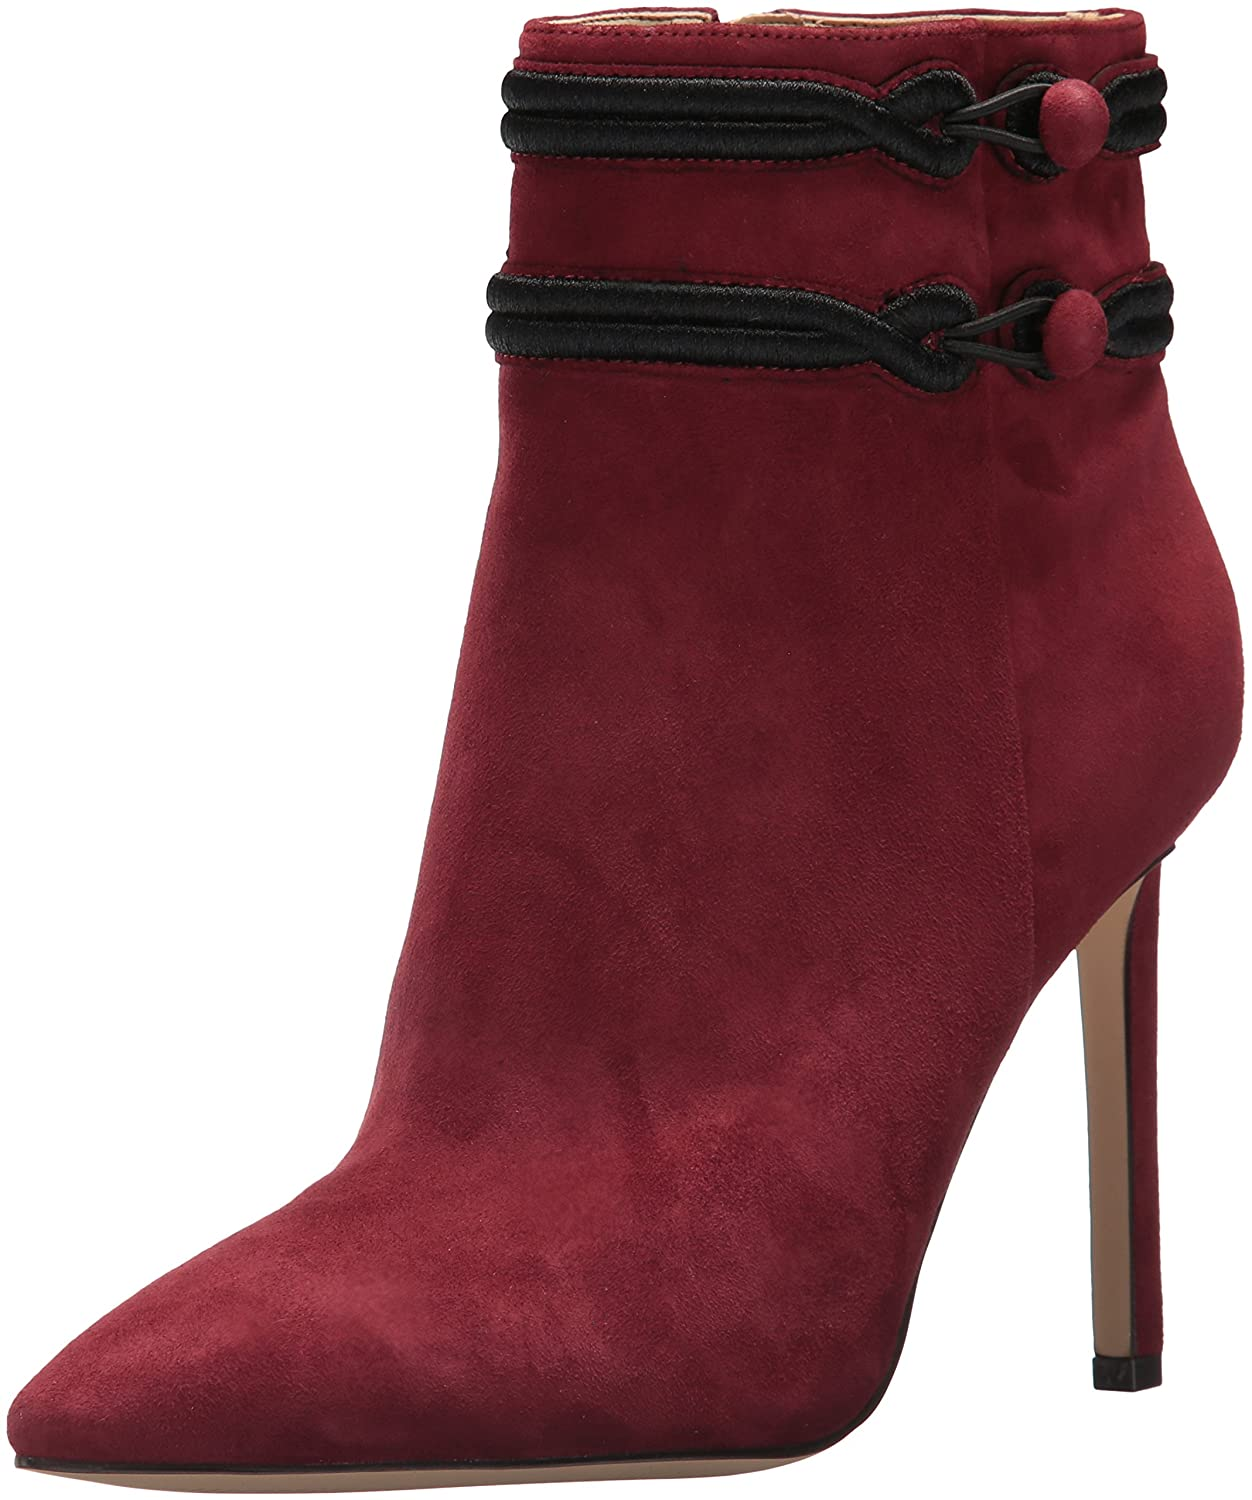 Nine West Women's Teresa Suede Ankle Boot B01N3CSZ5B 11 B(M) US|Wine/Wine